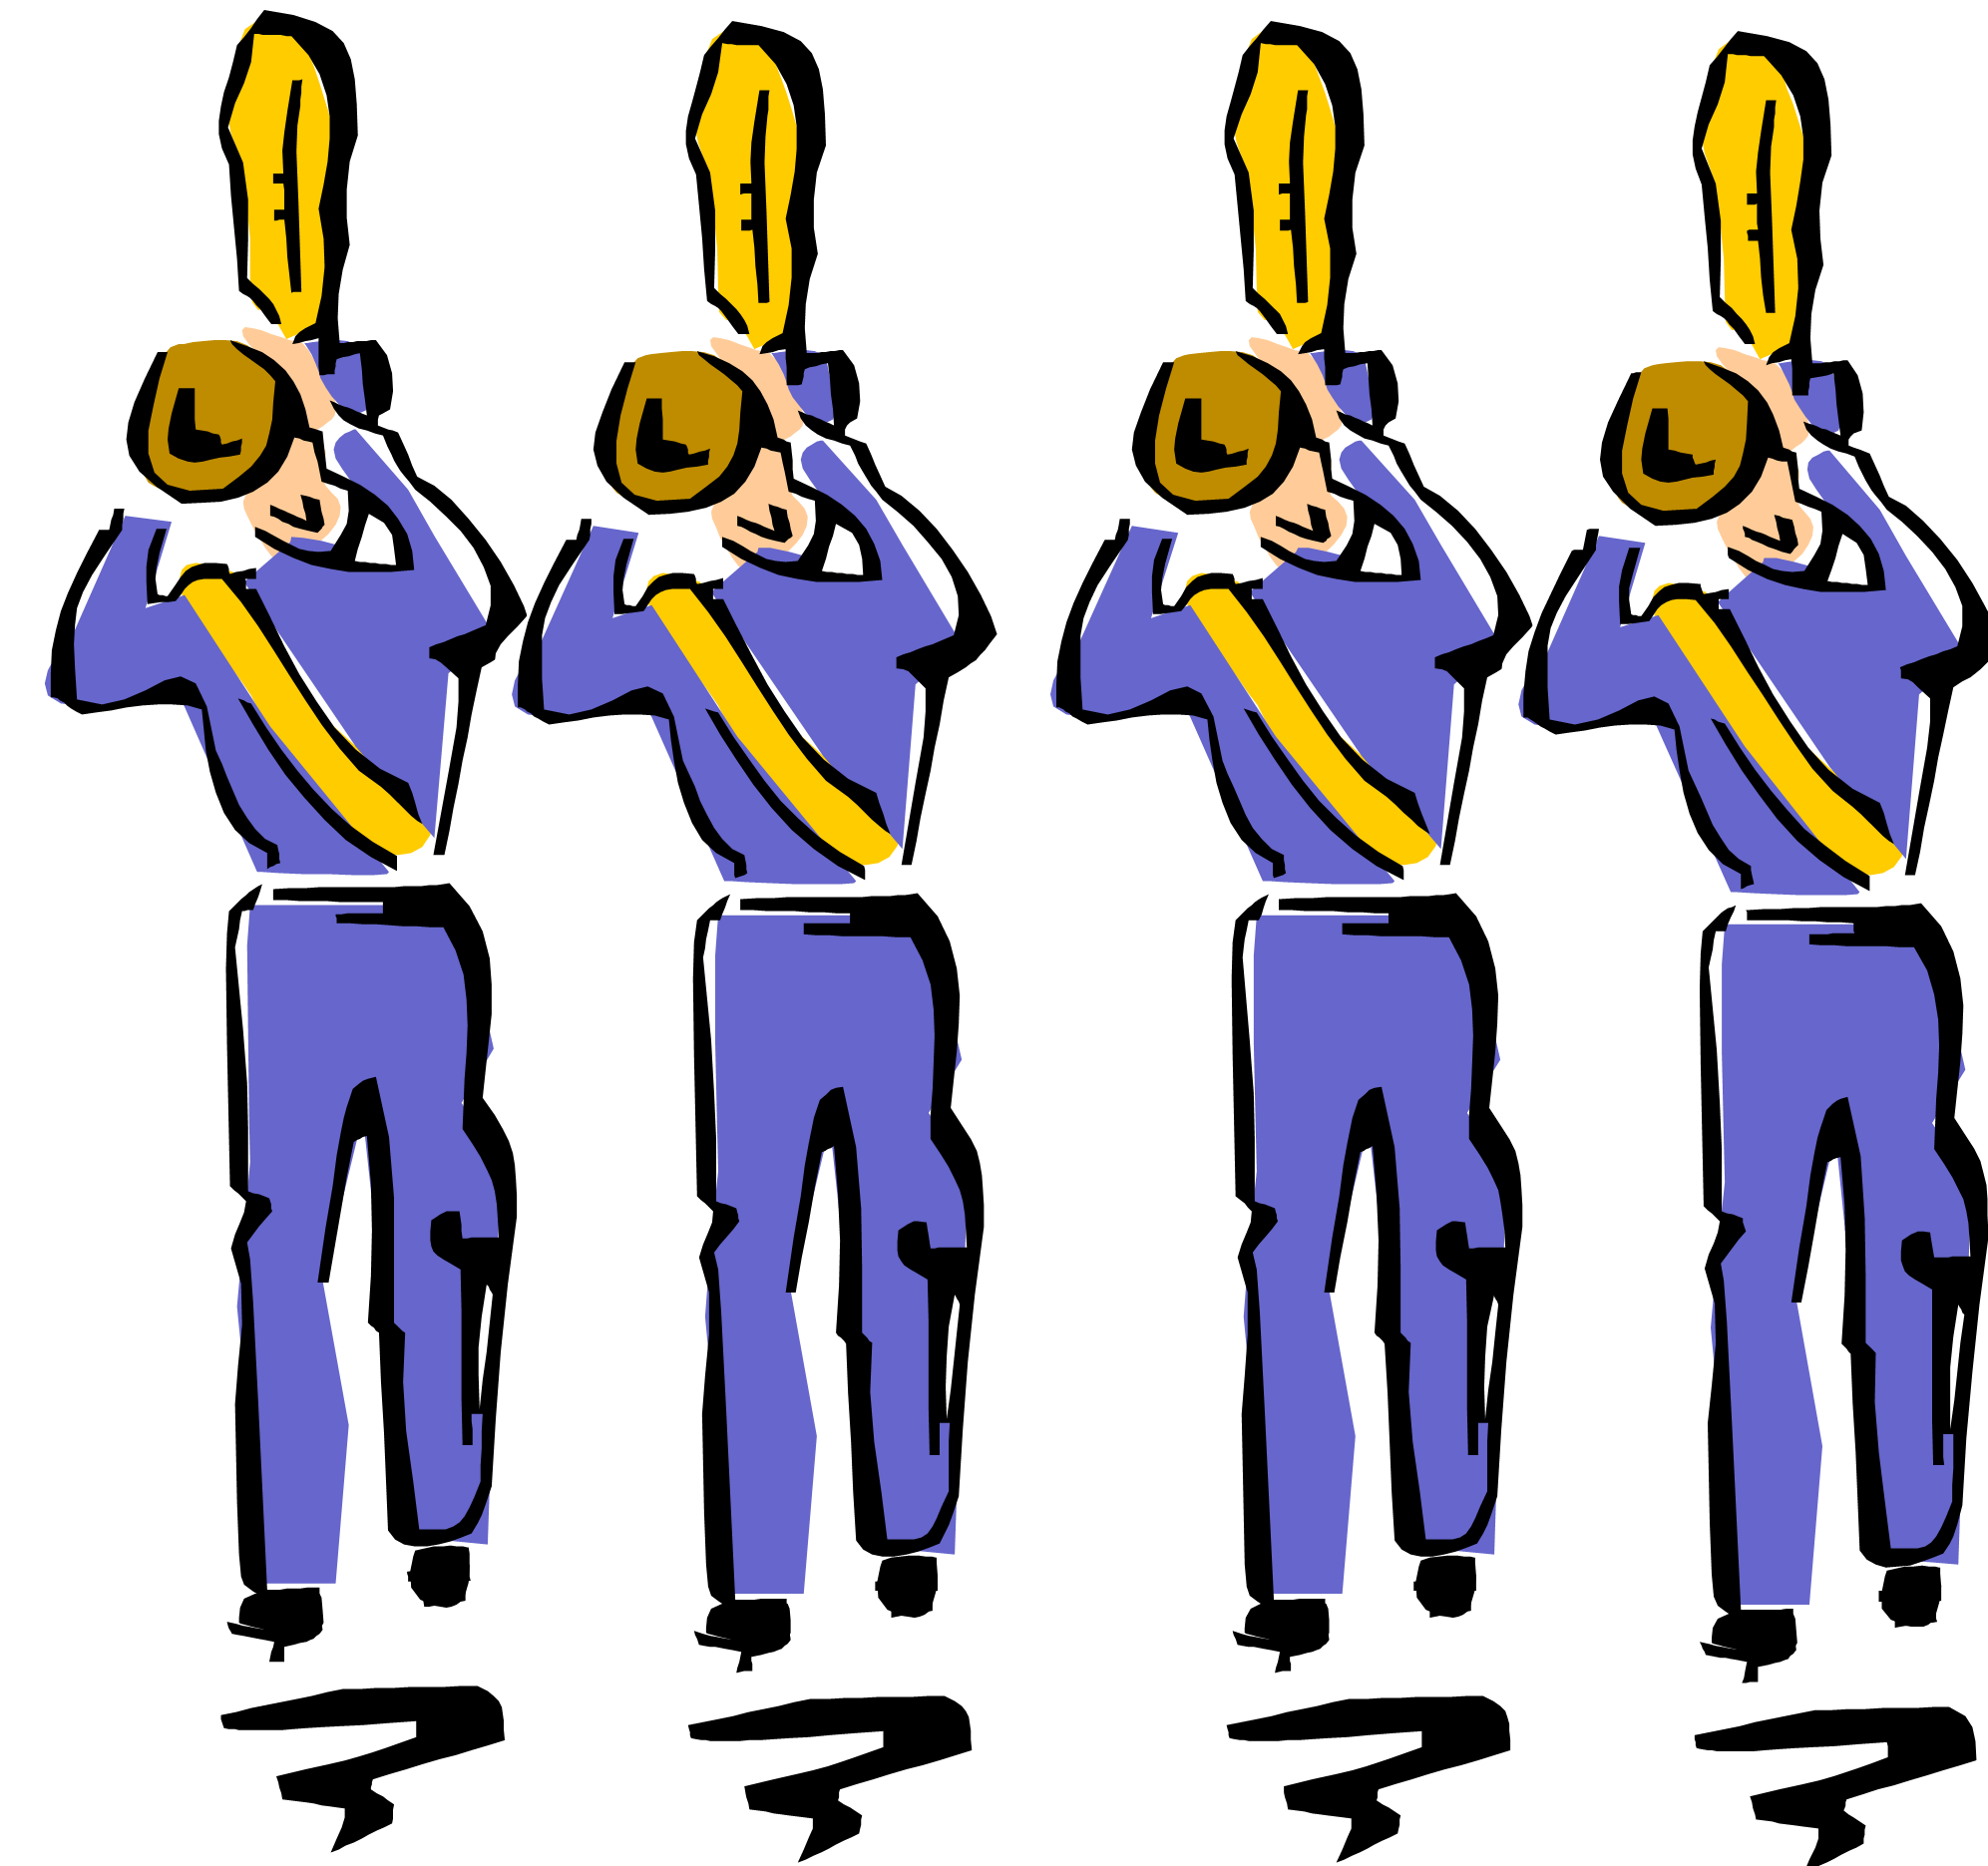 School band clipart vector library stock Free School Band Cliparts, Download Free Clip Art, Free Clip Art on ... vector library stock